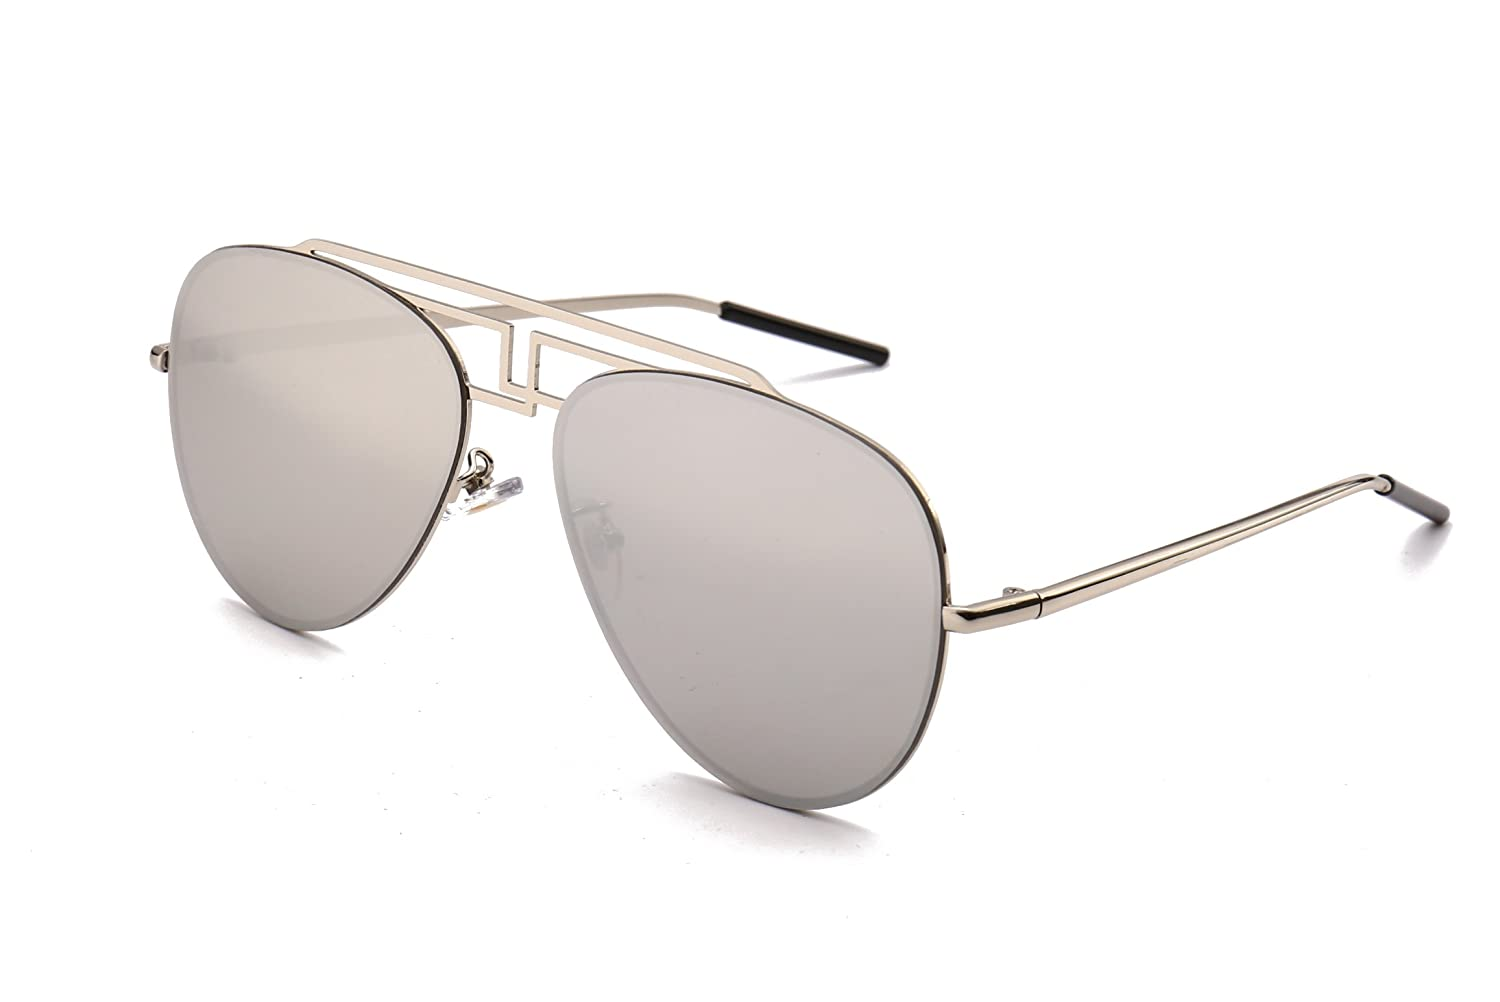 GAMT Mirrored Metal Aviator Sunglasses Rimless Sunglasses for Men and Women